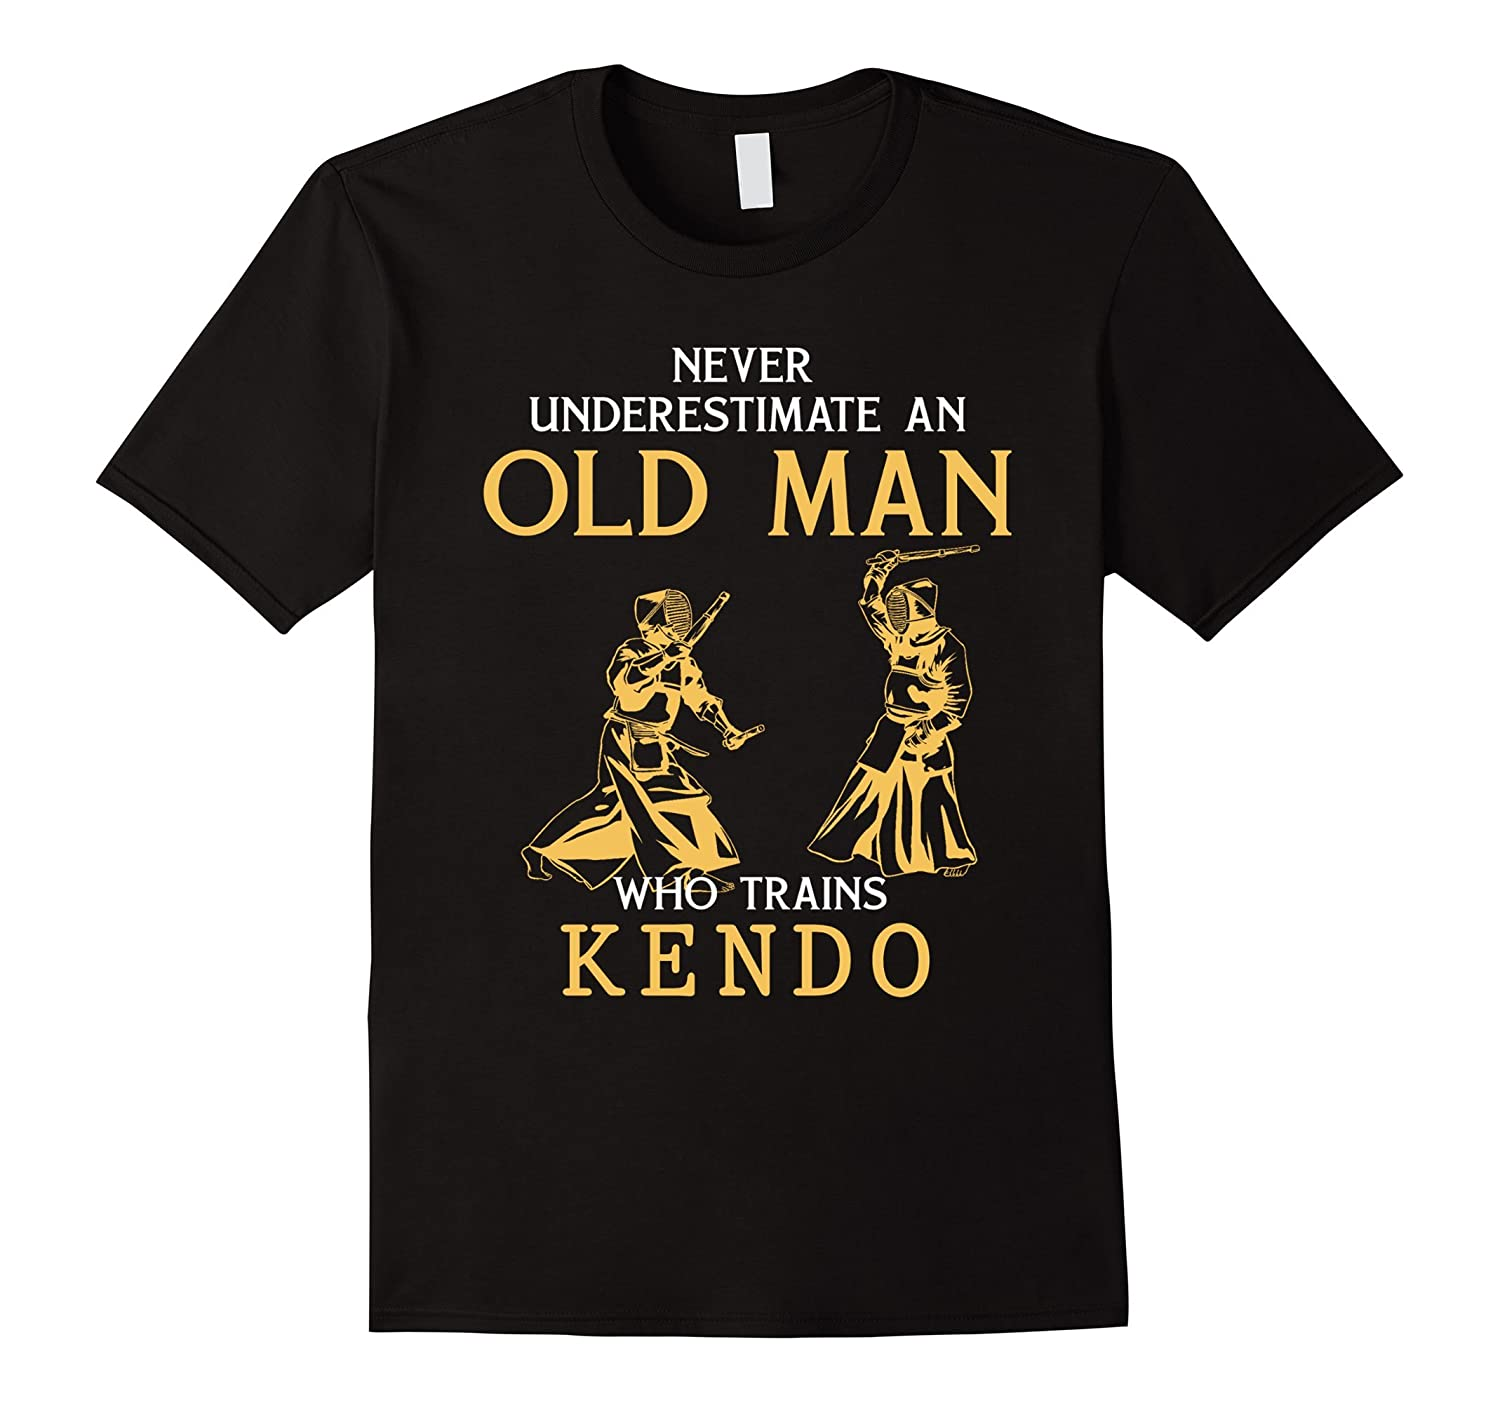 Never Underestimate an Old Man who trains Kendo t shirts-BN